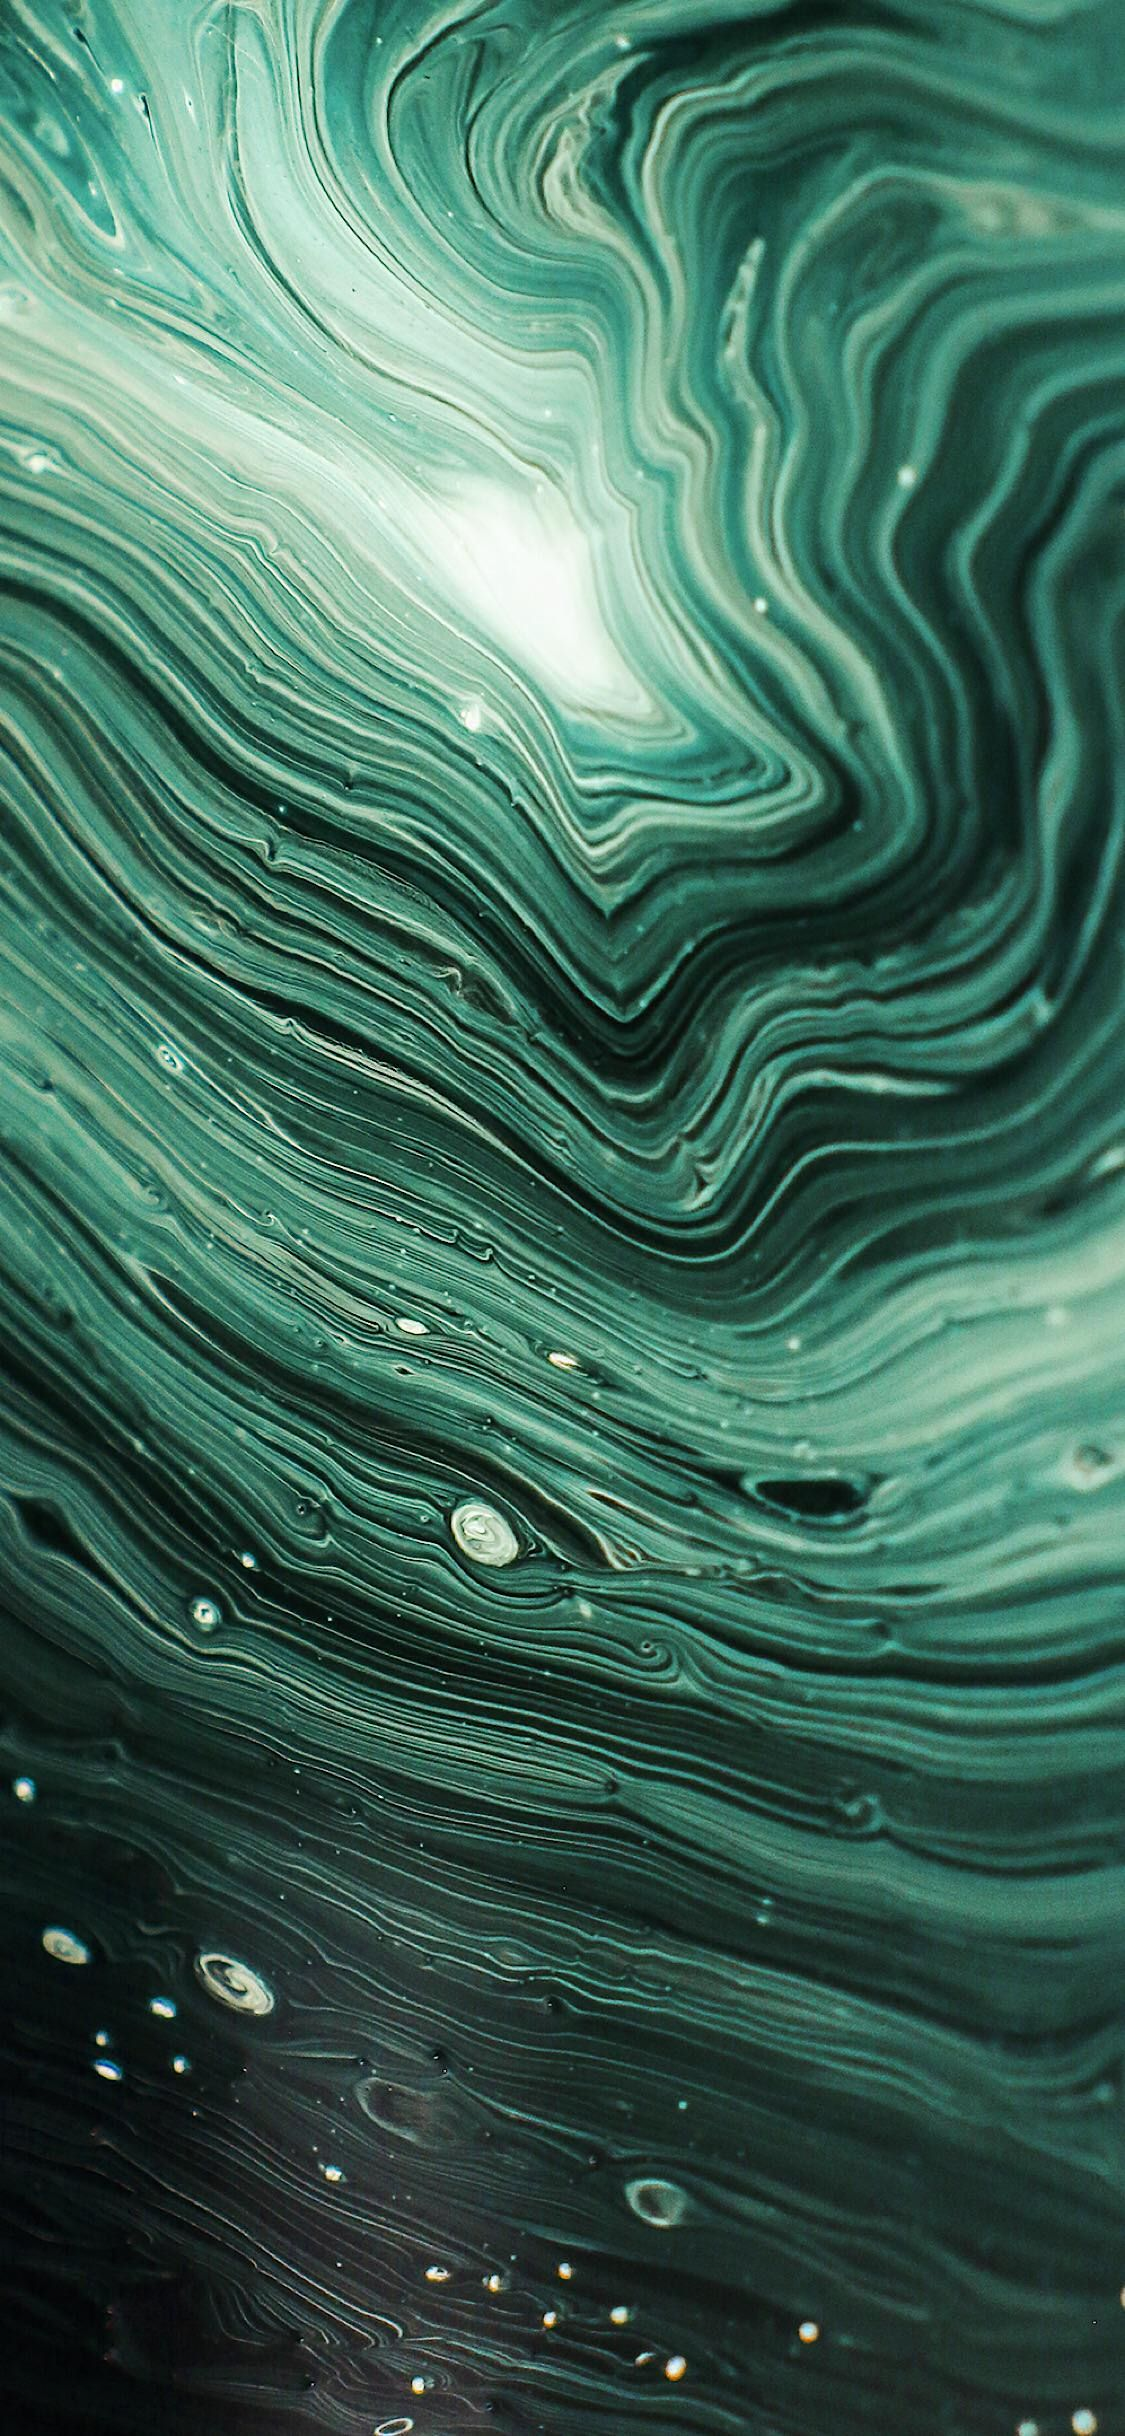 The Iphone X Xs Wallpaper Thread Page 43 Iphone Ipad Ipod Forums At Imore C Iphone Wallpaper Green Abstract Iphone Wallpaper Iphone Wallpaper Hd Original